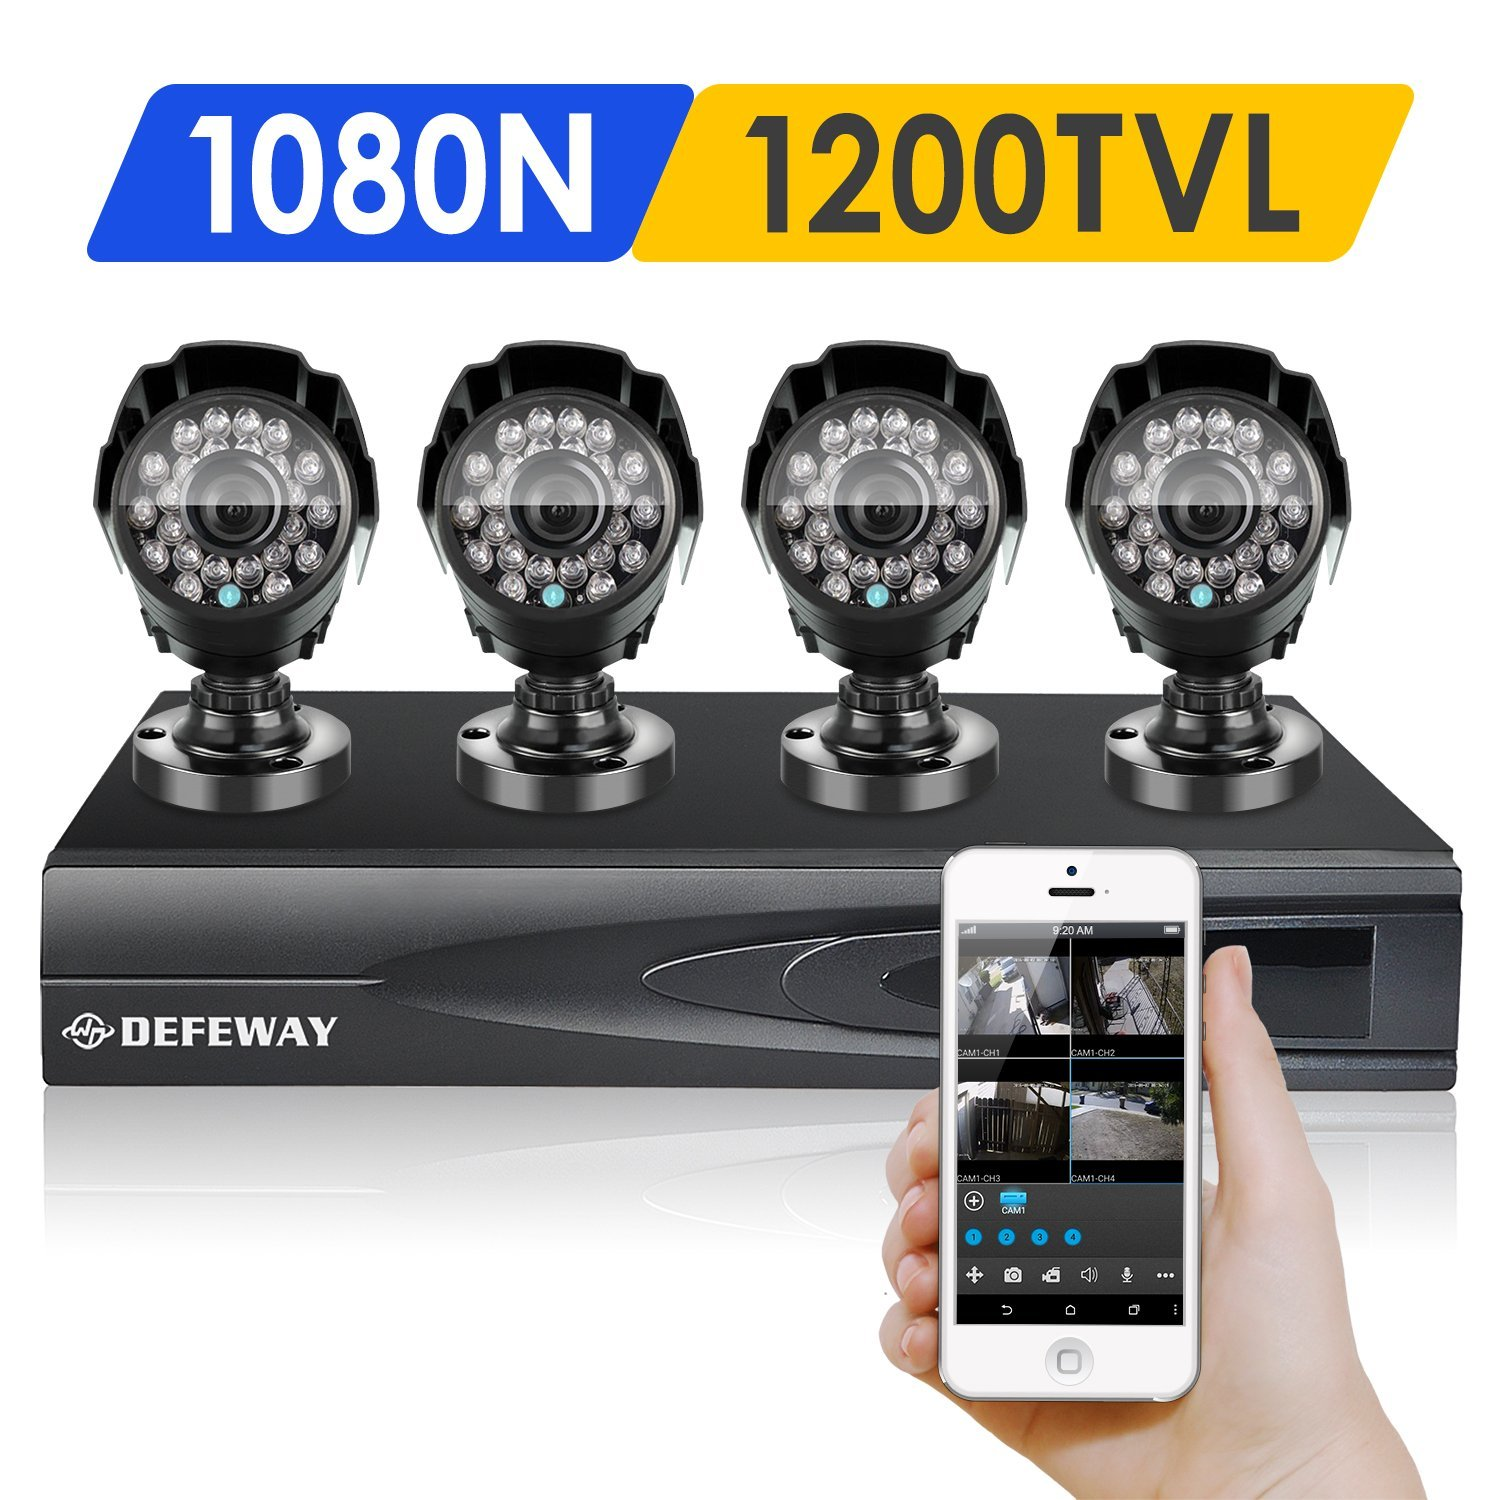 DEFEWAY 1080N DVR 1200TVL 720P HD Outdoor Home Security Video Surveillance Camera System